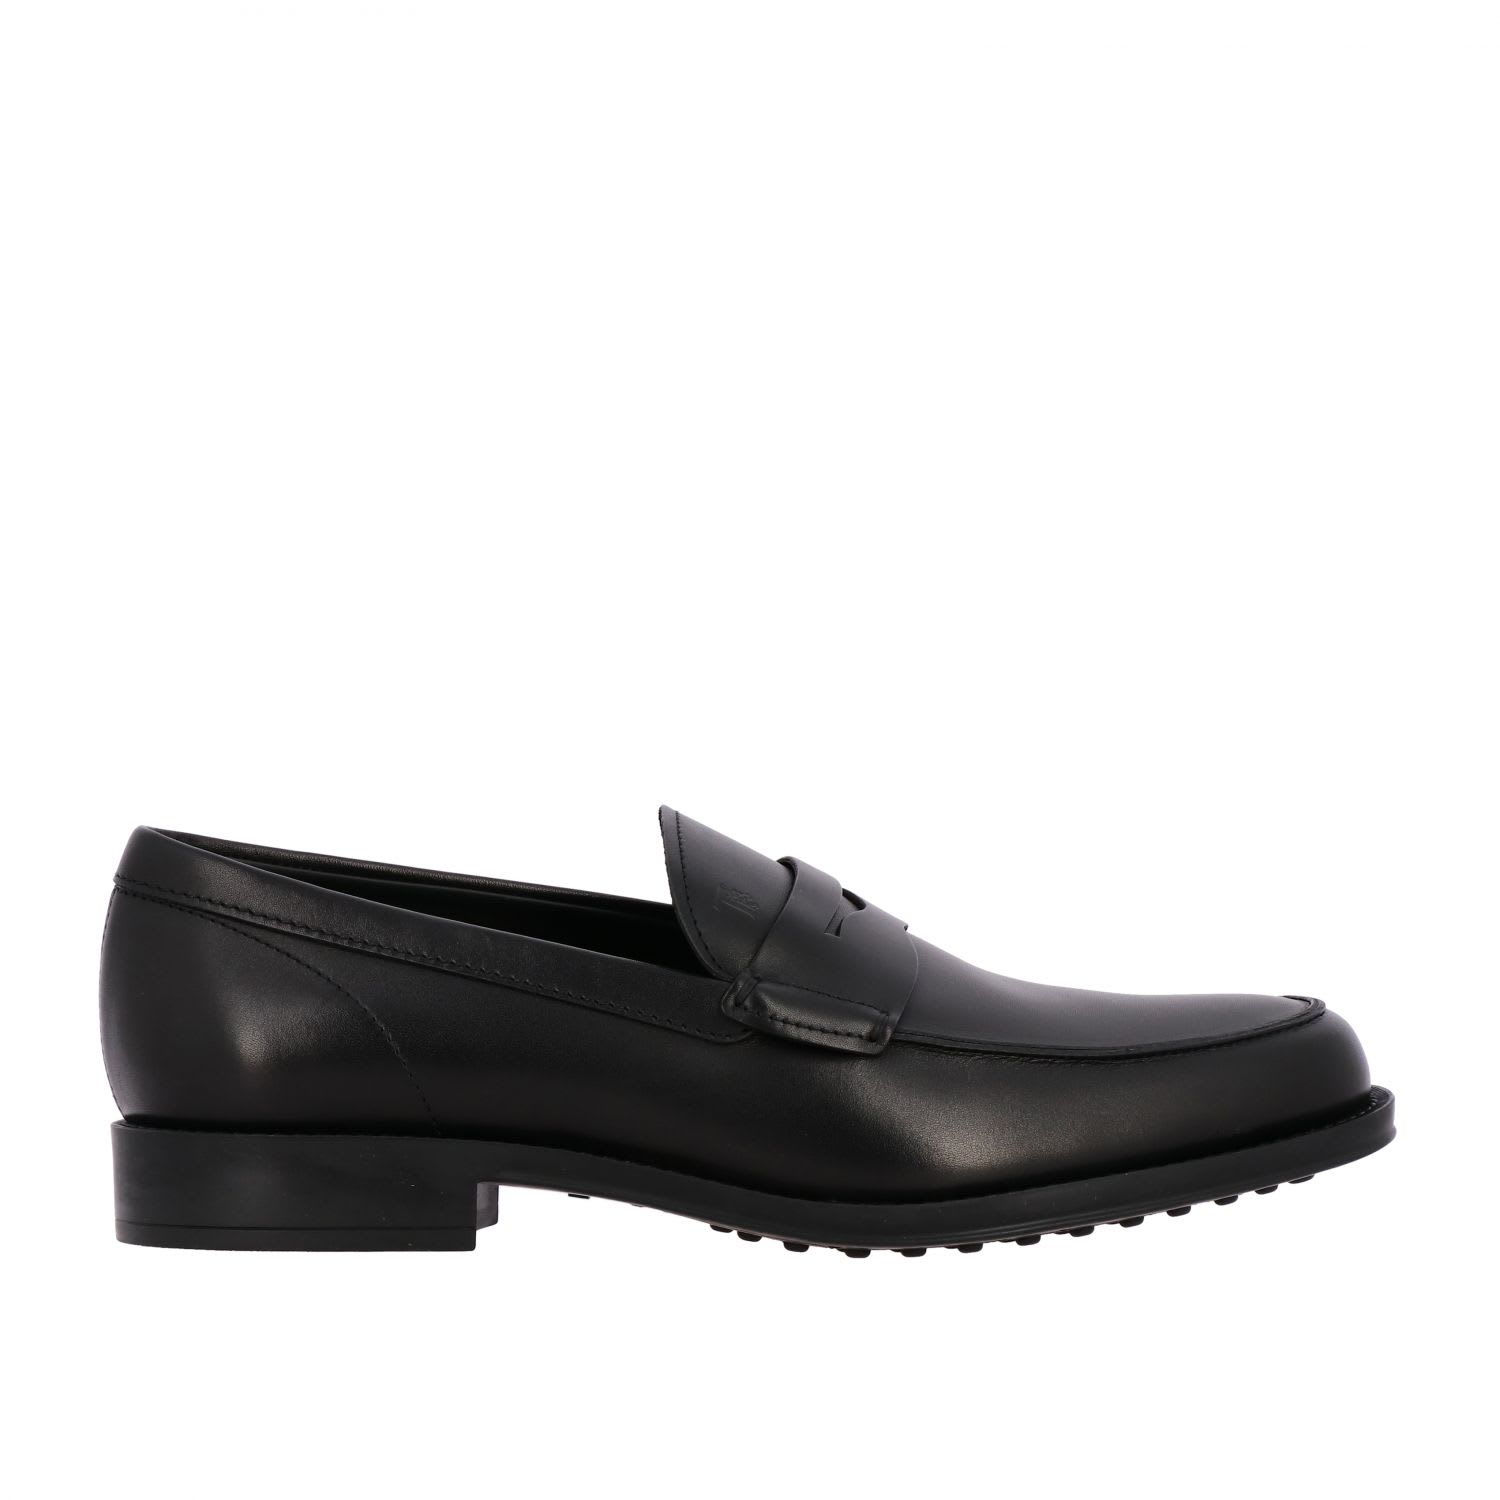 Loafers Tods Loafer In Leather With SleeperComposition: 100% La